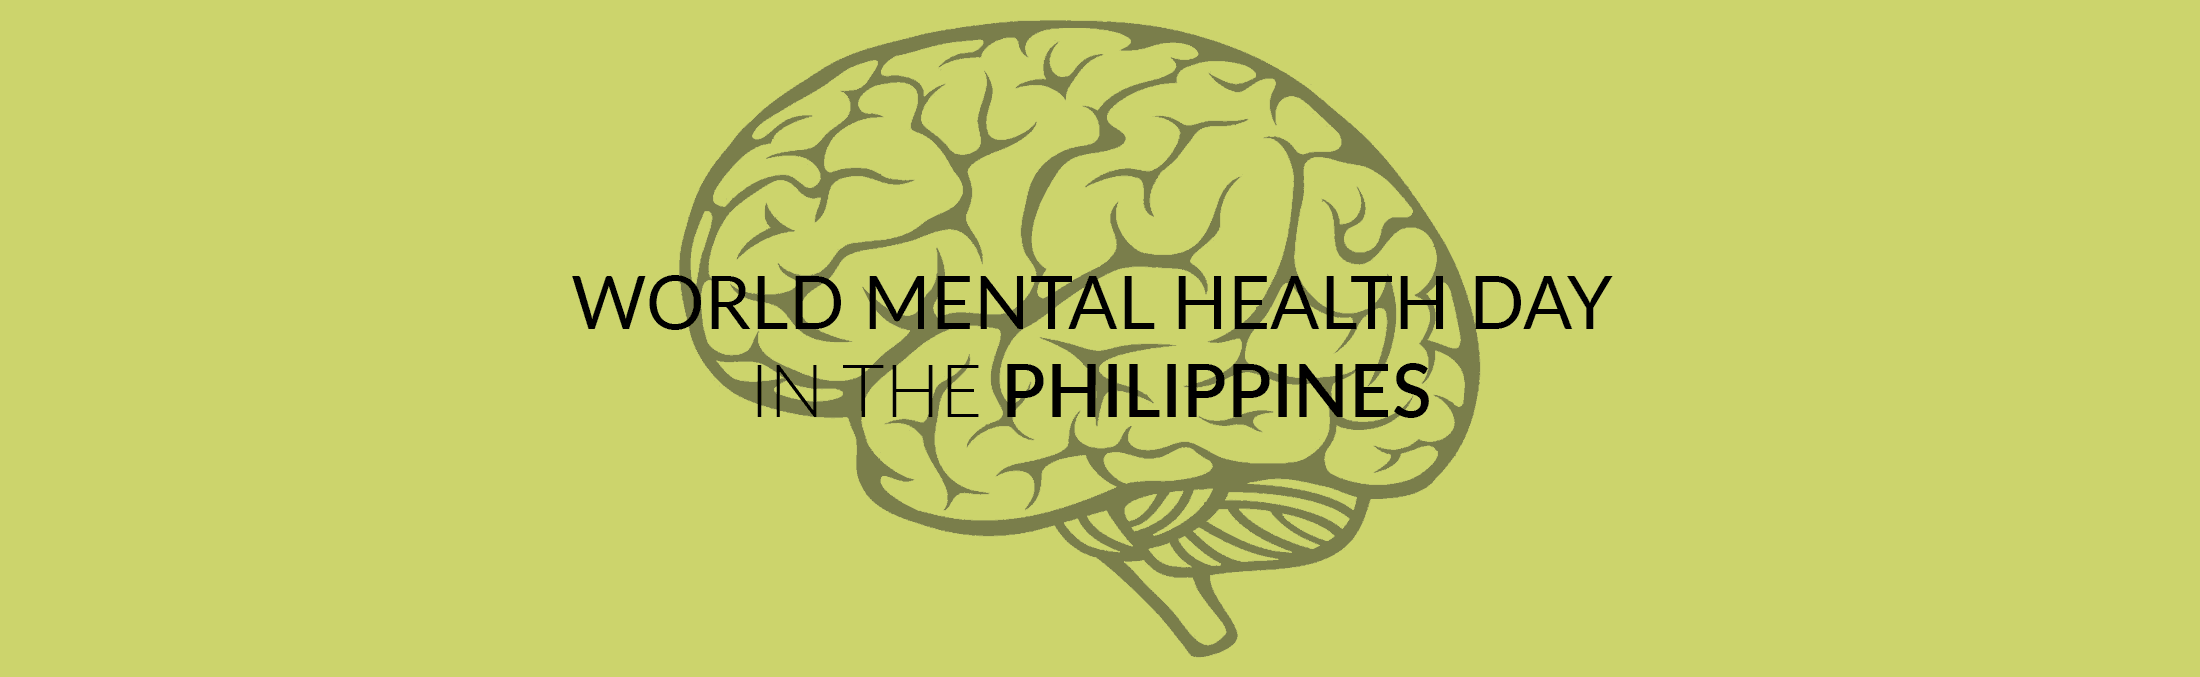 philippines world mental health day